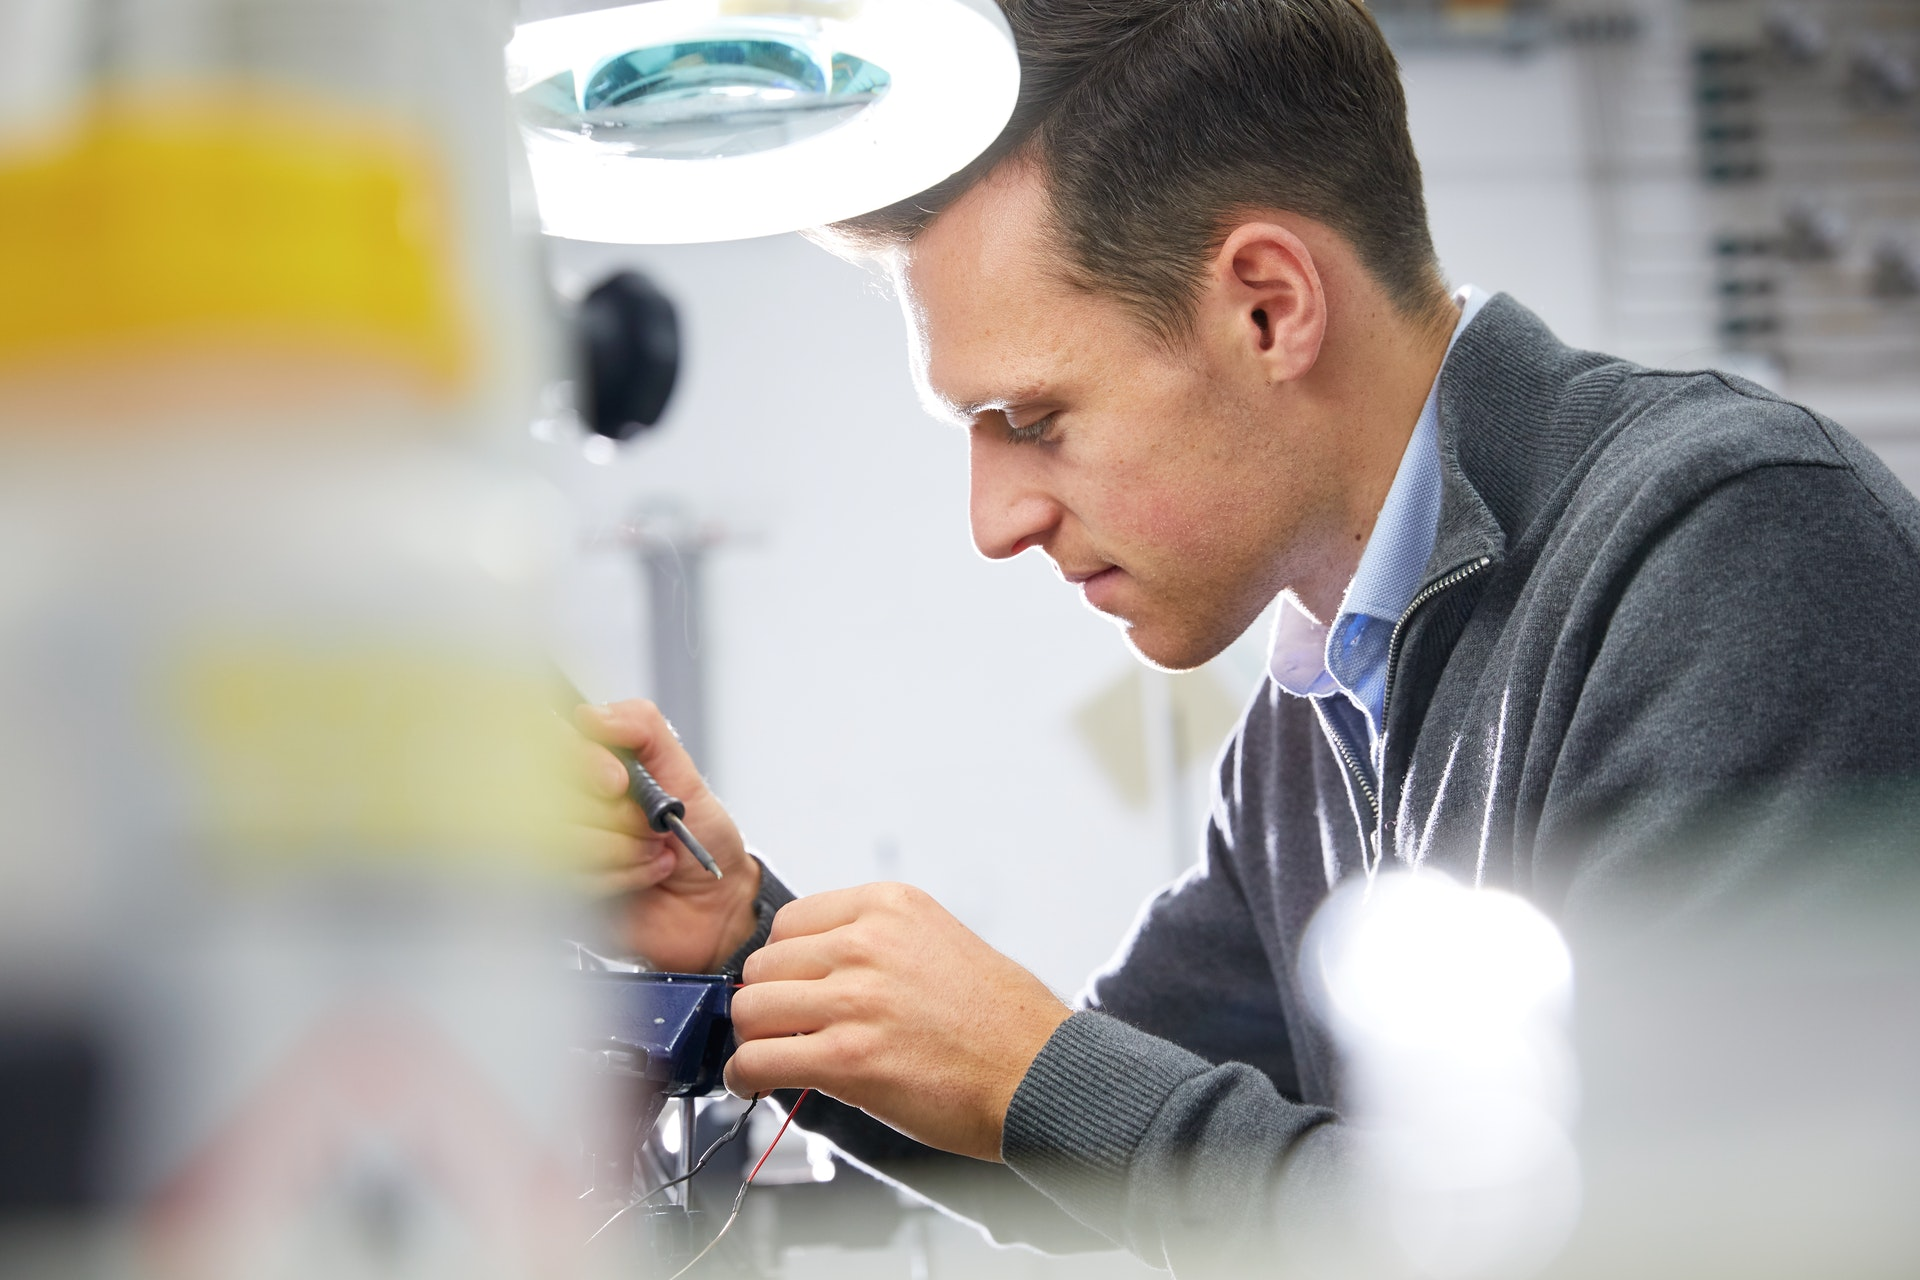 Cambustion engineer soldering